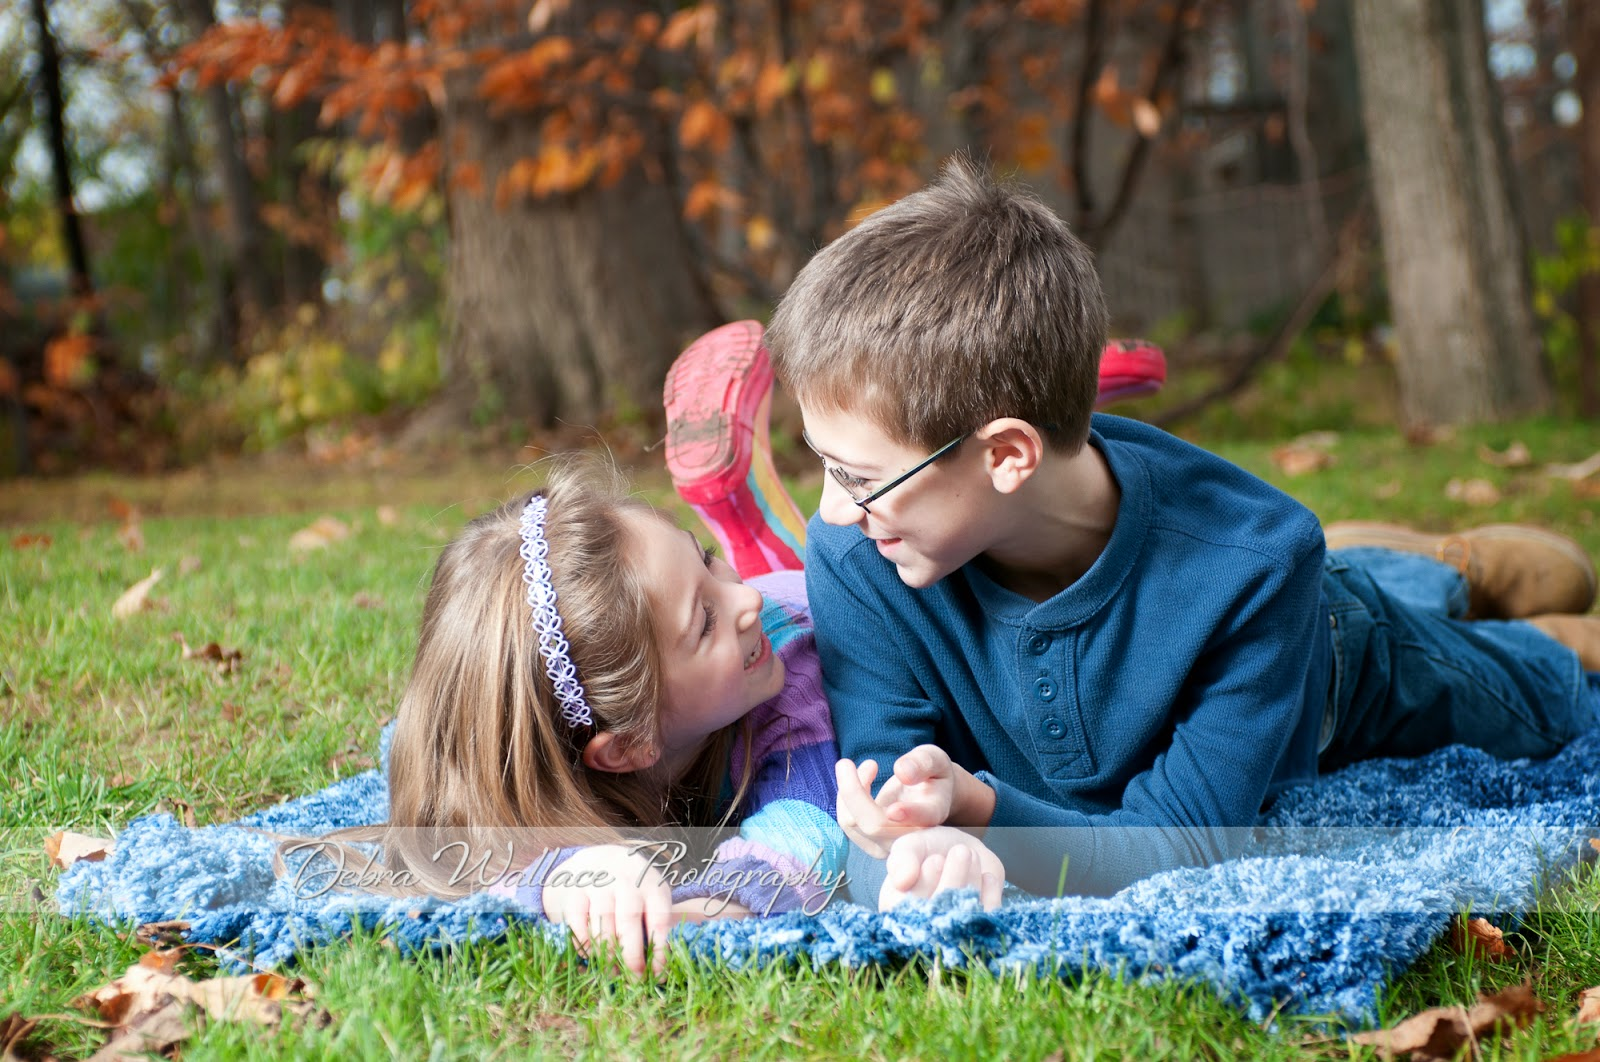 playful sibling portraits outside in the fall